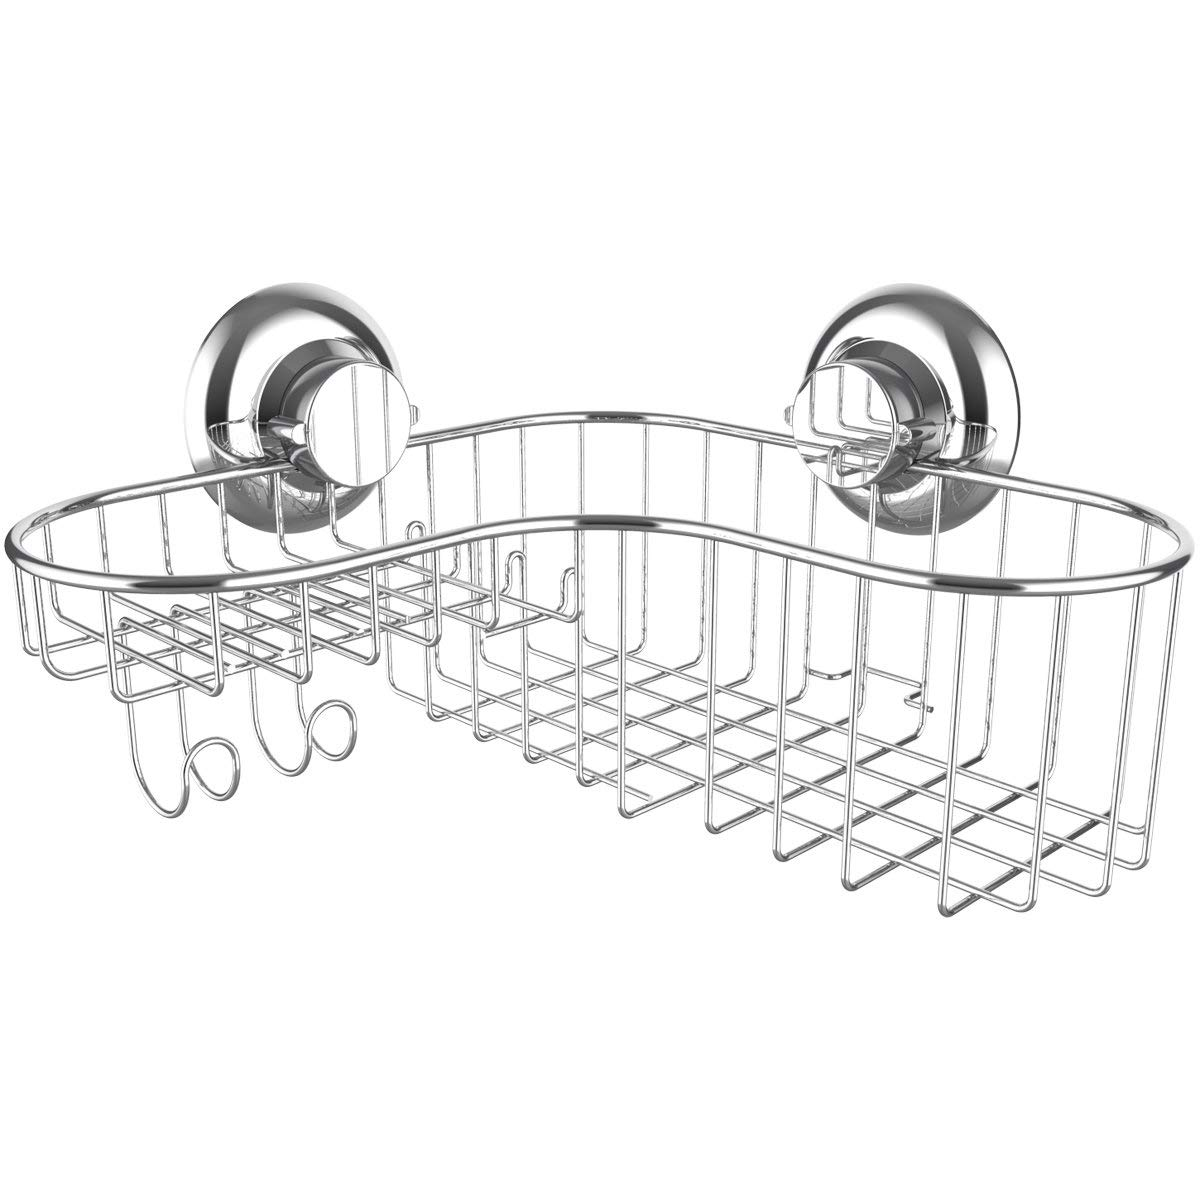 Shower Caddy Suction Cup Corner Combo Powerful Vacuum System Organizer Basket with Soap Holder and Hooks for Shampoo Conditioner Holder, Rustproof 304 Stainless Steel for Bathroom Shelf Storage